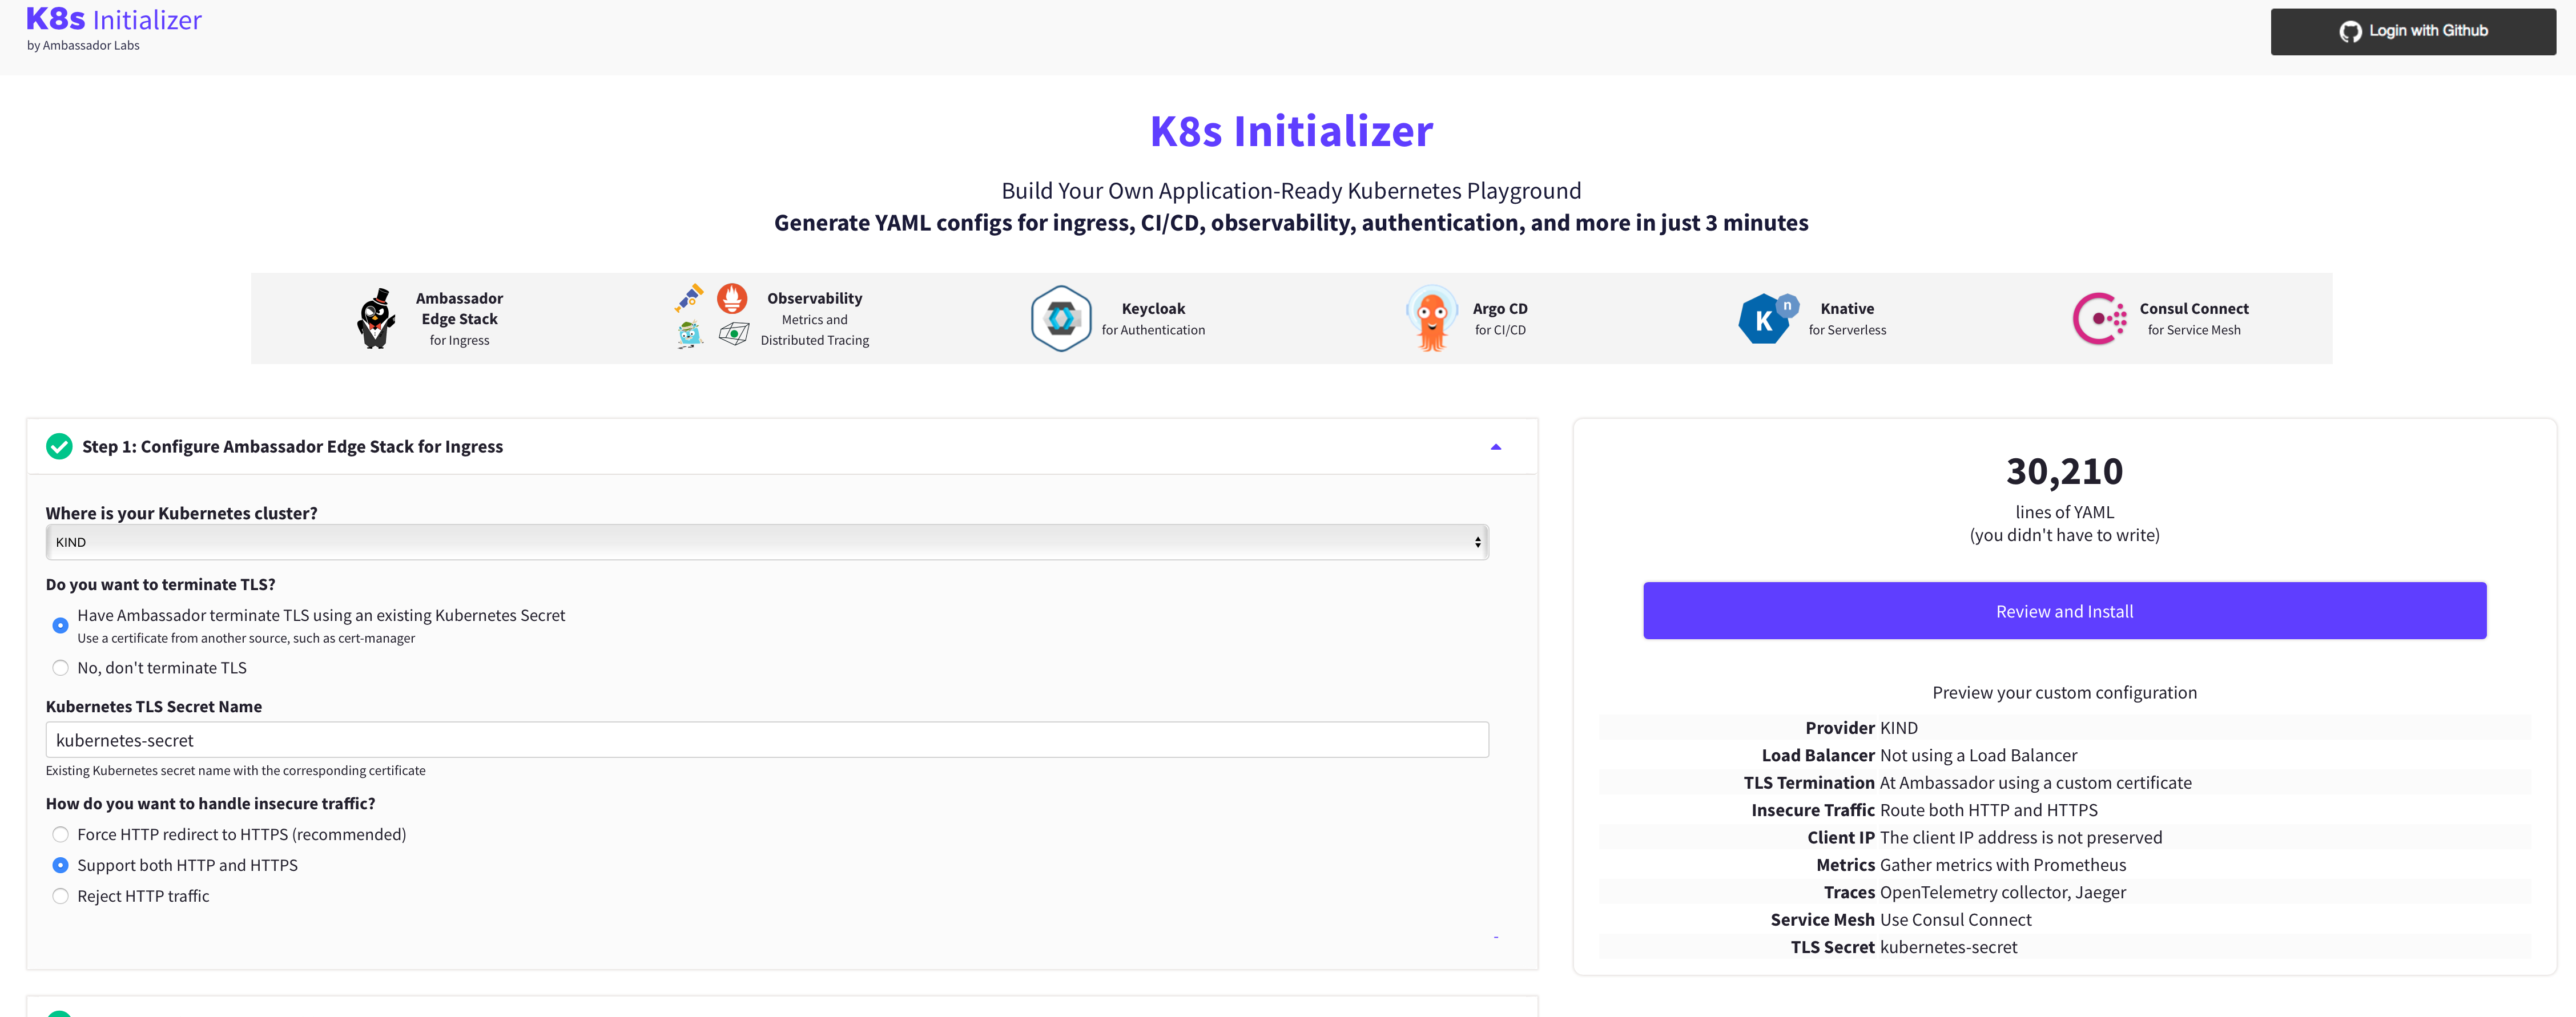 K8s Initializer home